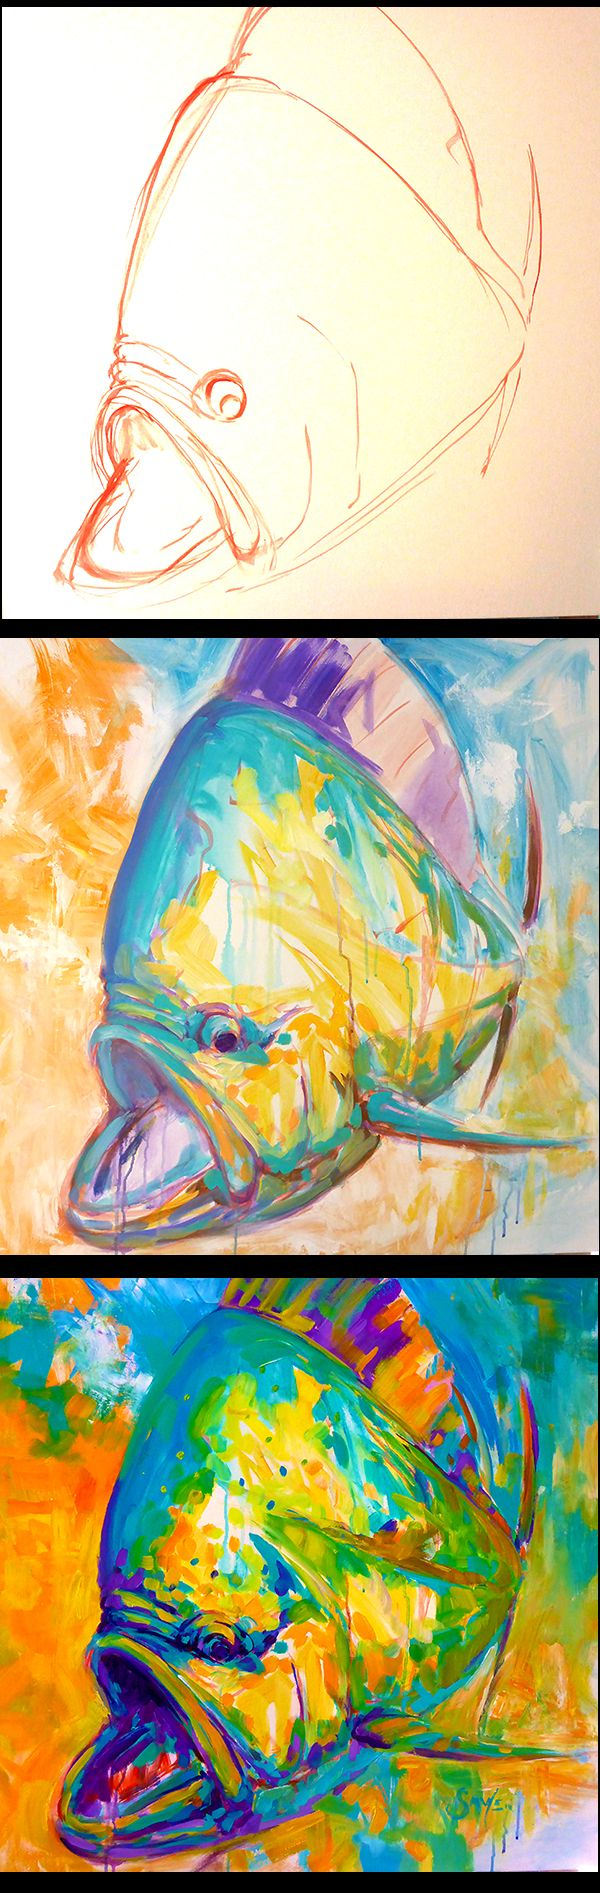 Felix murillo lleno de colores painting acrylic artwork fish art - Was Seriously Feeling The Need To Paint Larger Today Acrylic Painting On Canvas Alla Prima